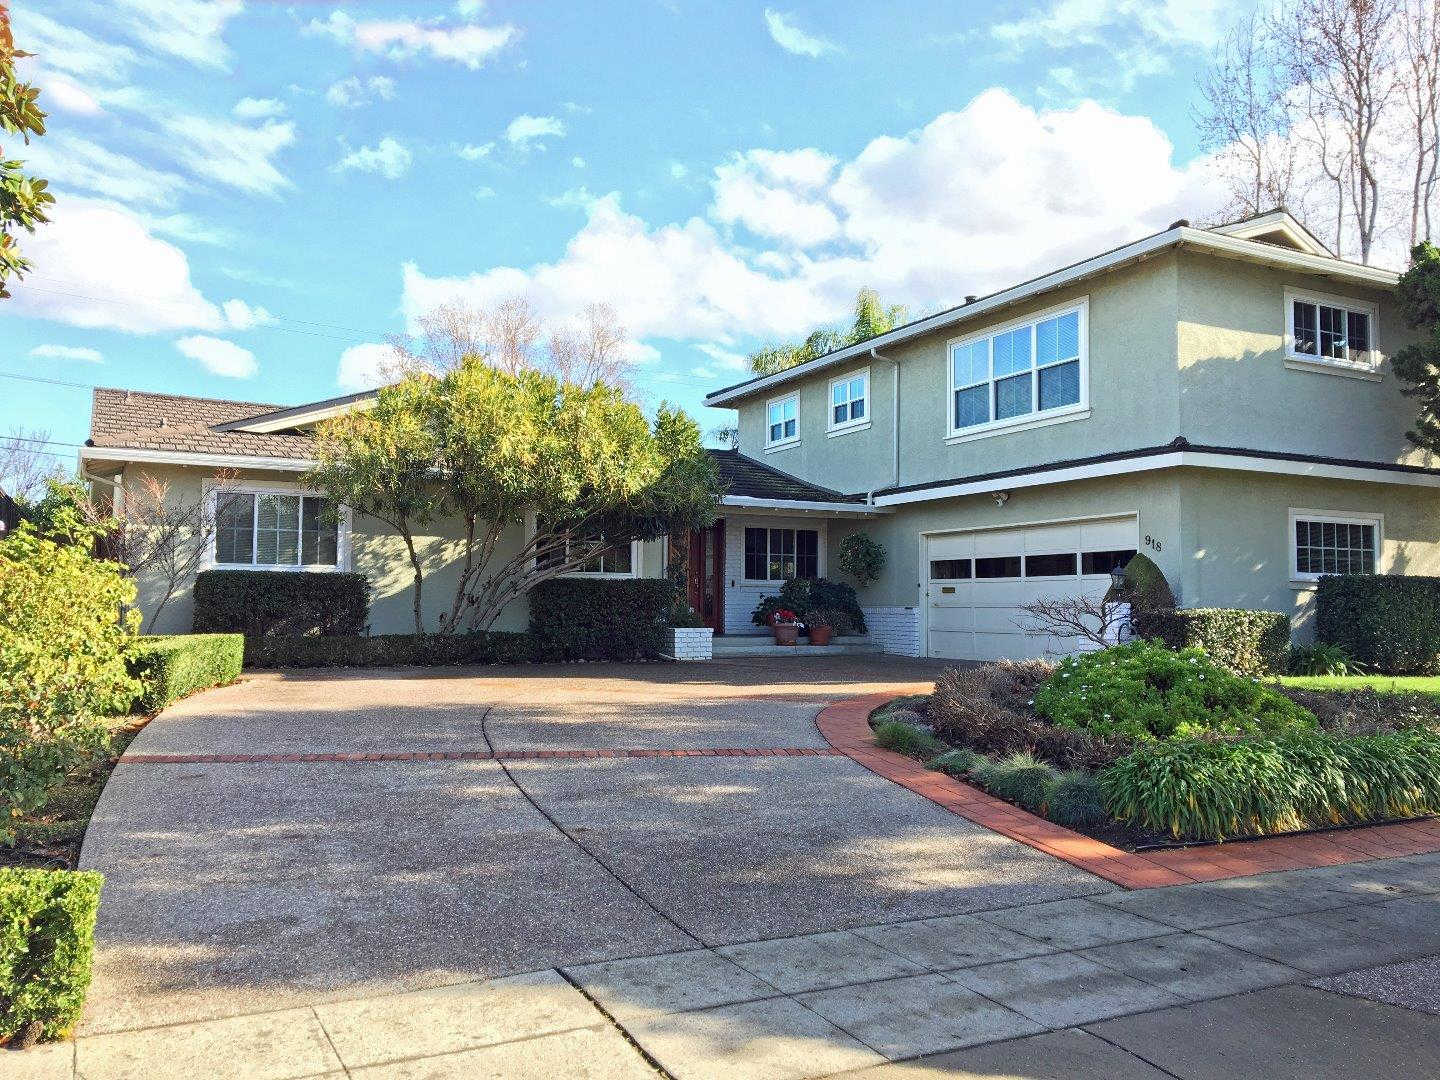 918 Radcliffe Drive, San Jose, CA 95117 now has a new price of $1,599,000!